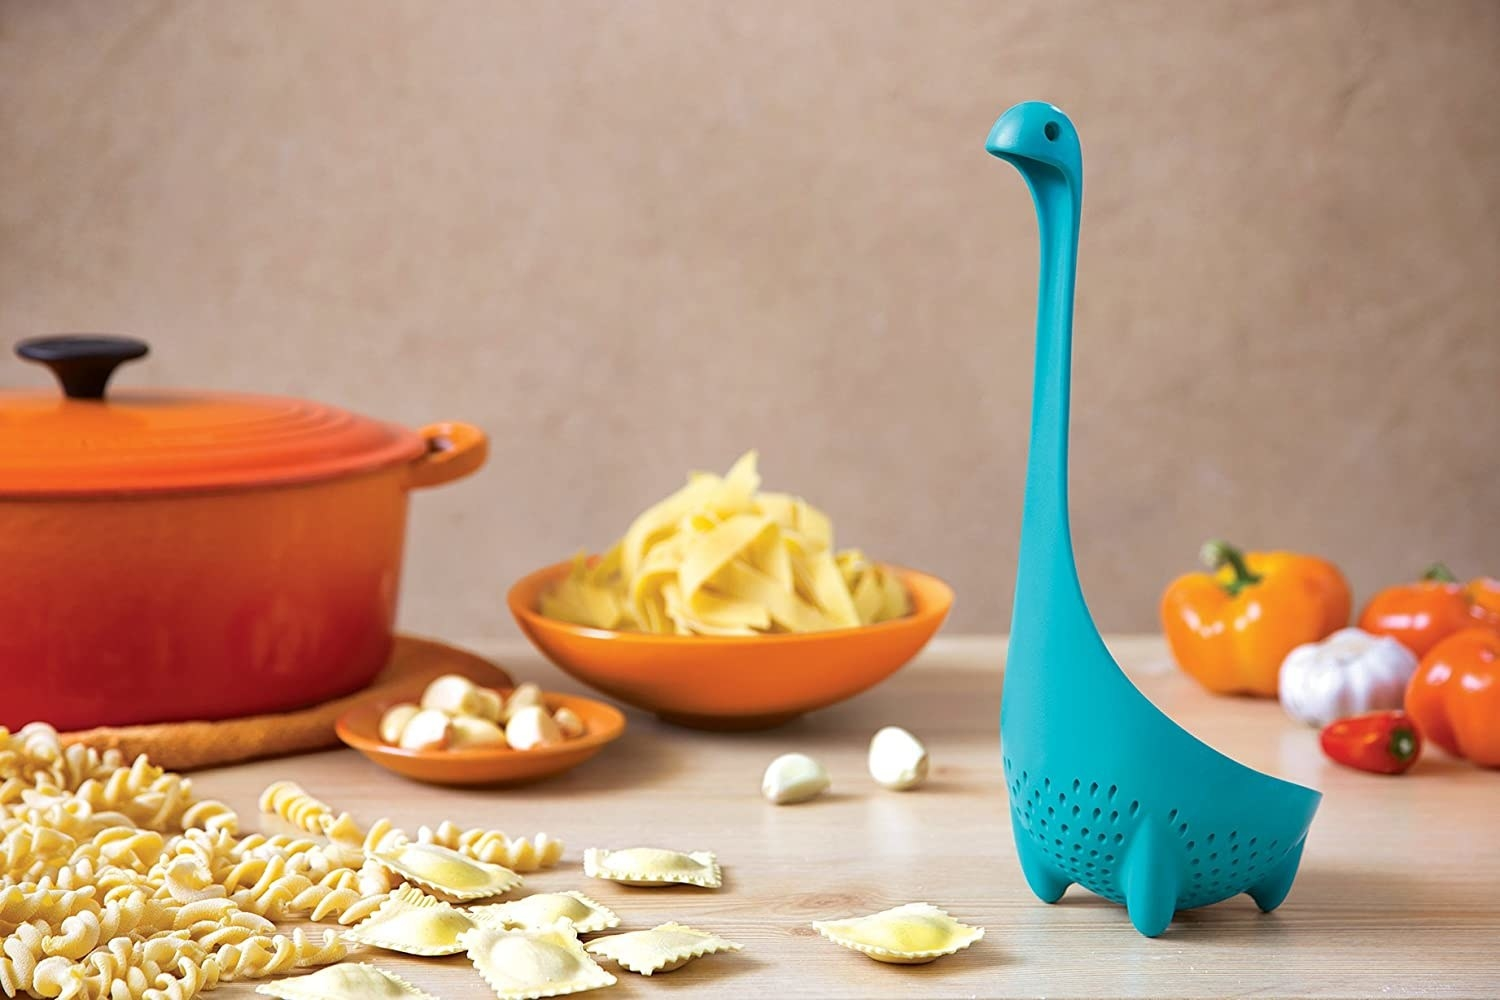 A blue ladle with a long neck and a little head shaped like the Loch Ness monster perched on a table.